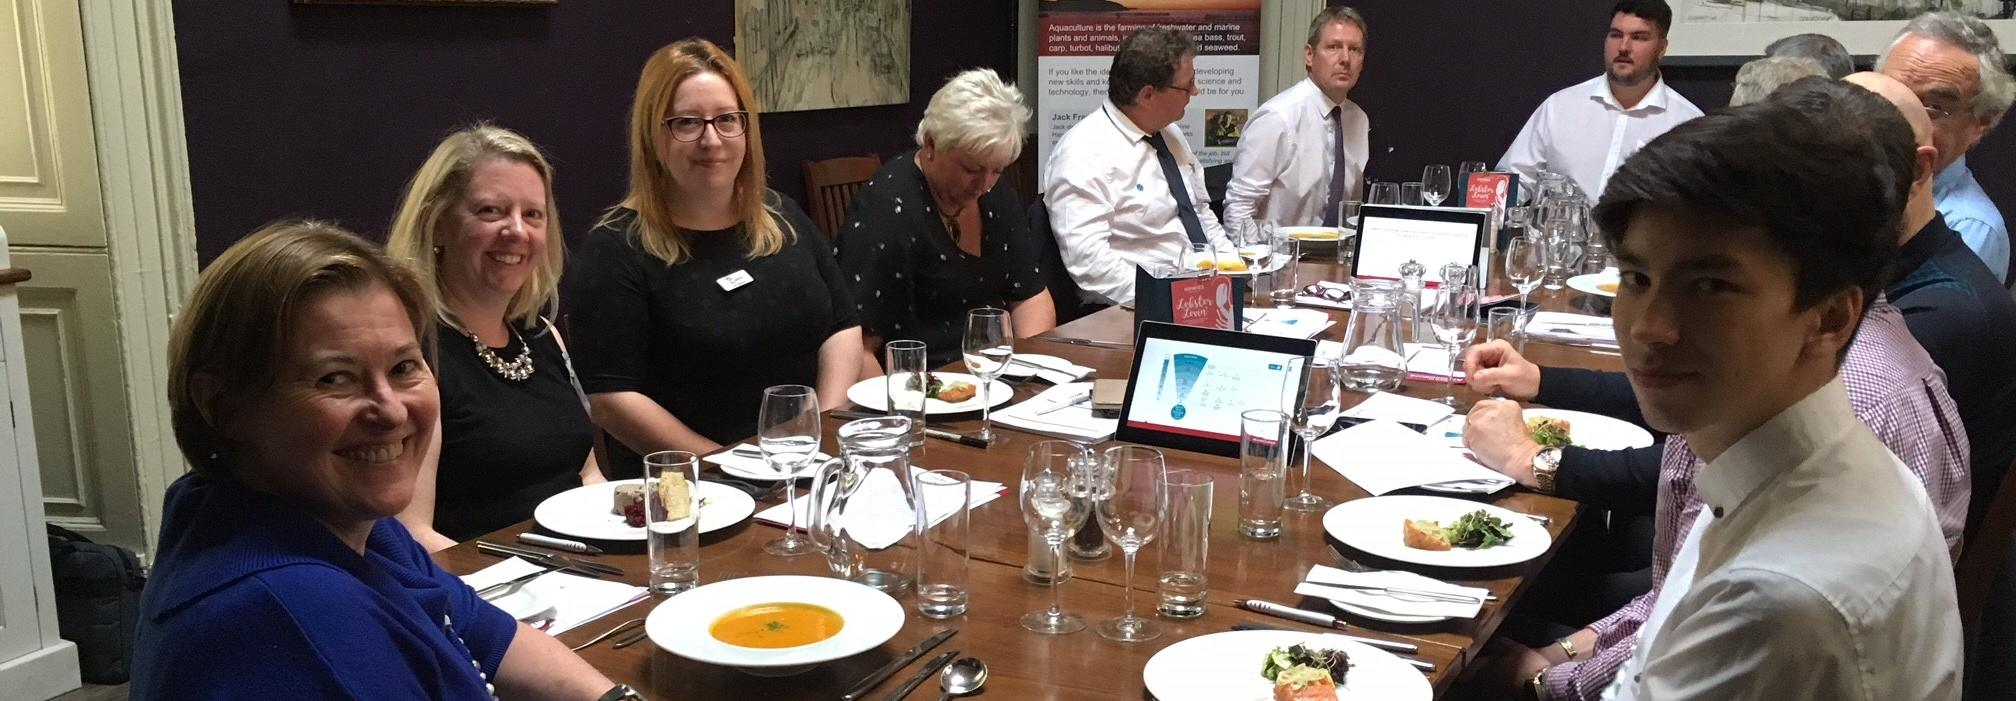 Aquaculture lunch with Lantra Scotland Chairman and industry figures